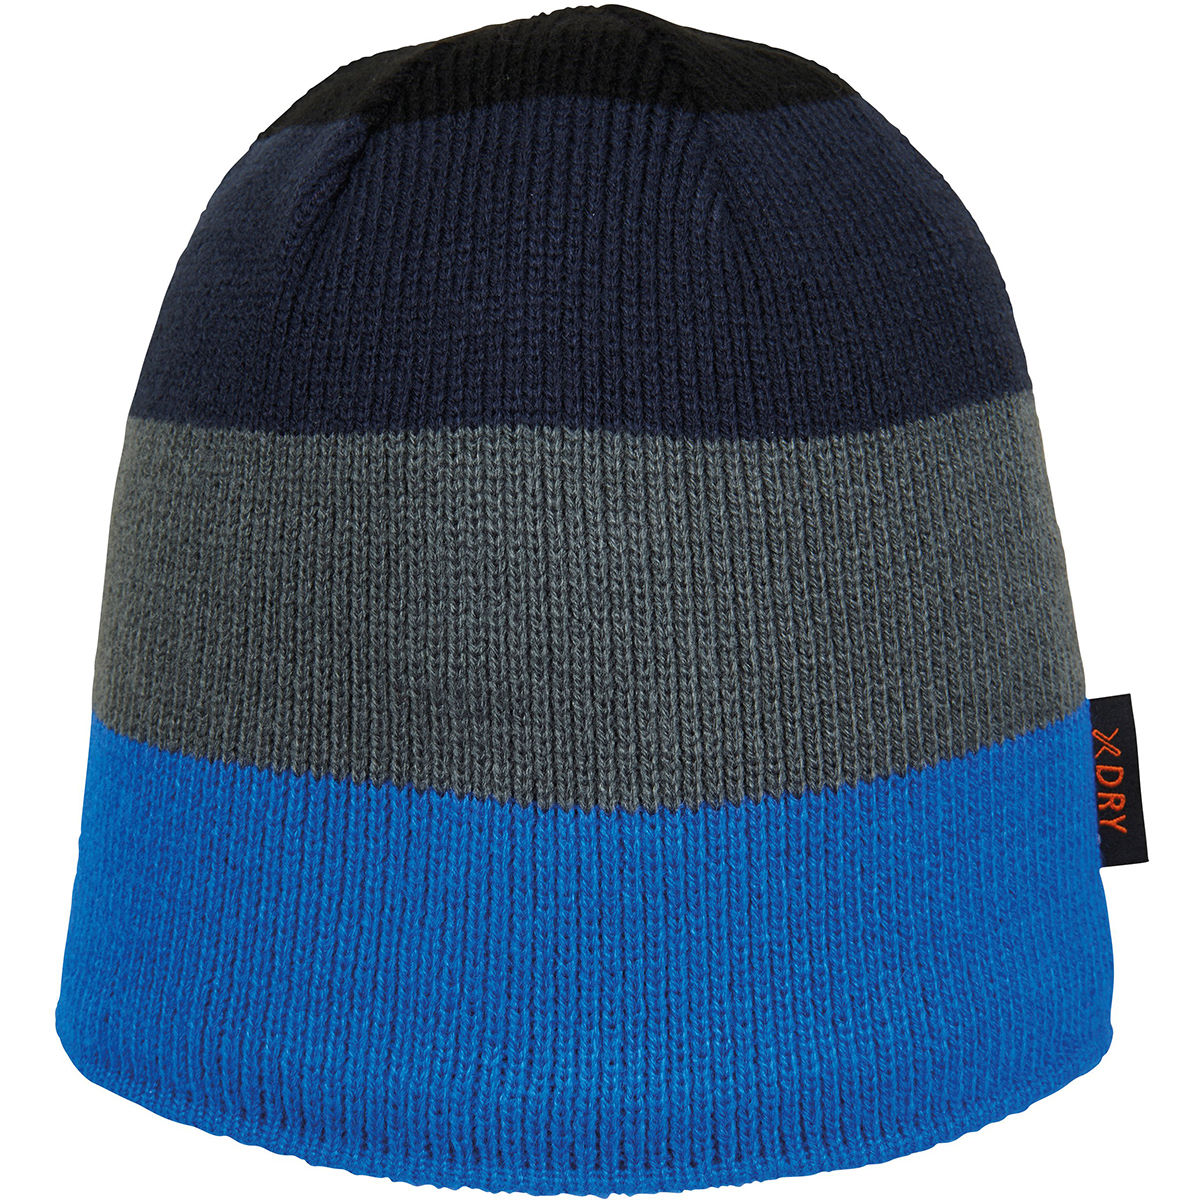 Extremities Arid Stripe Waterproof Knit Beanie - Gorros